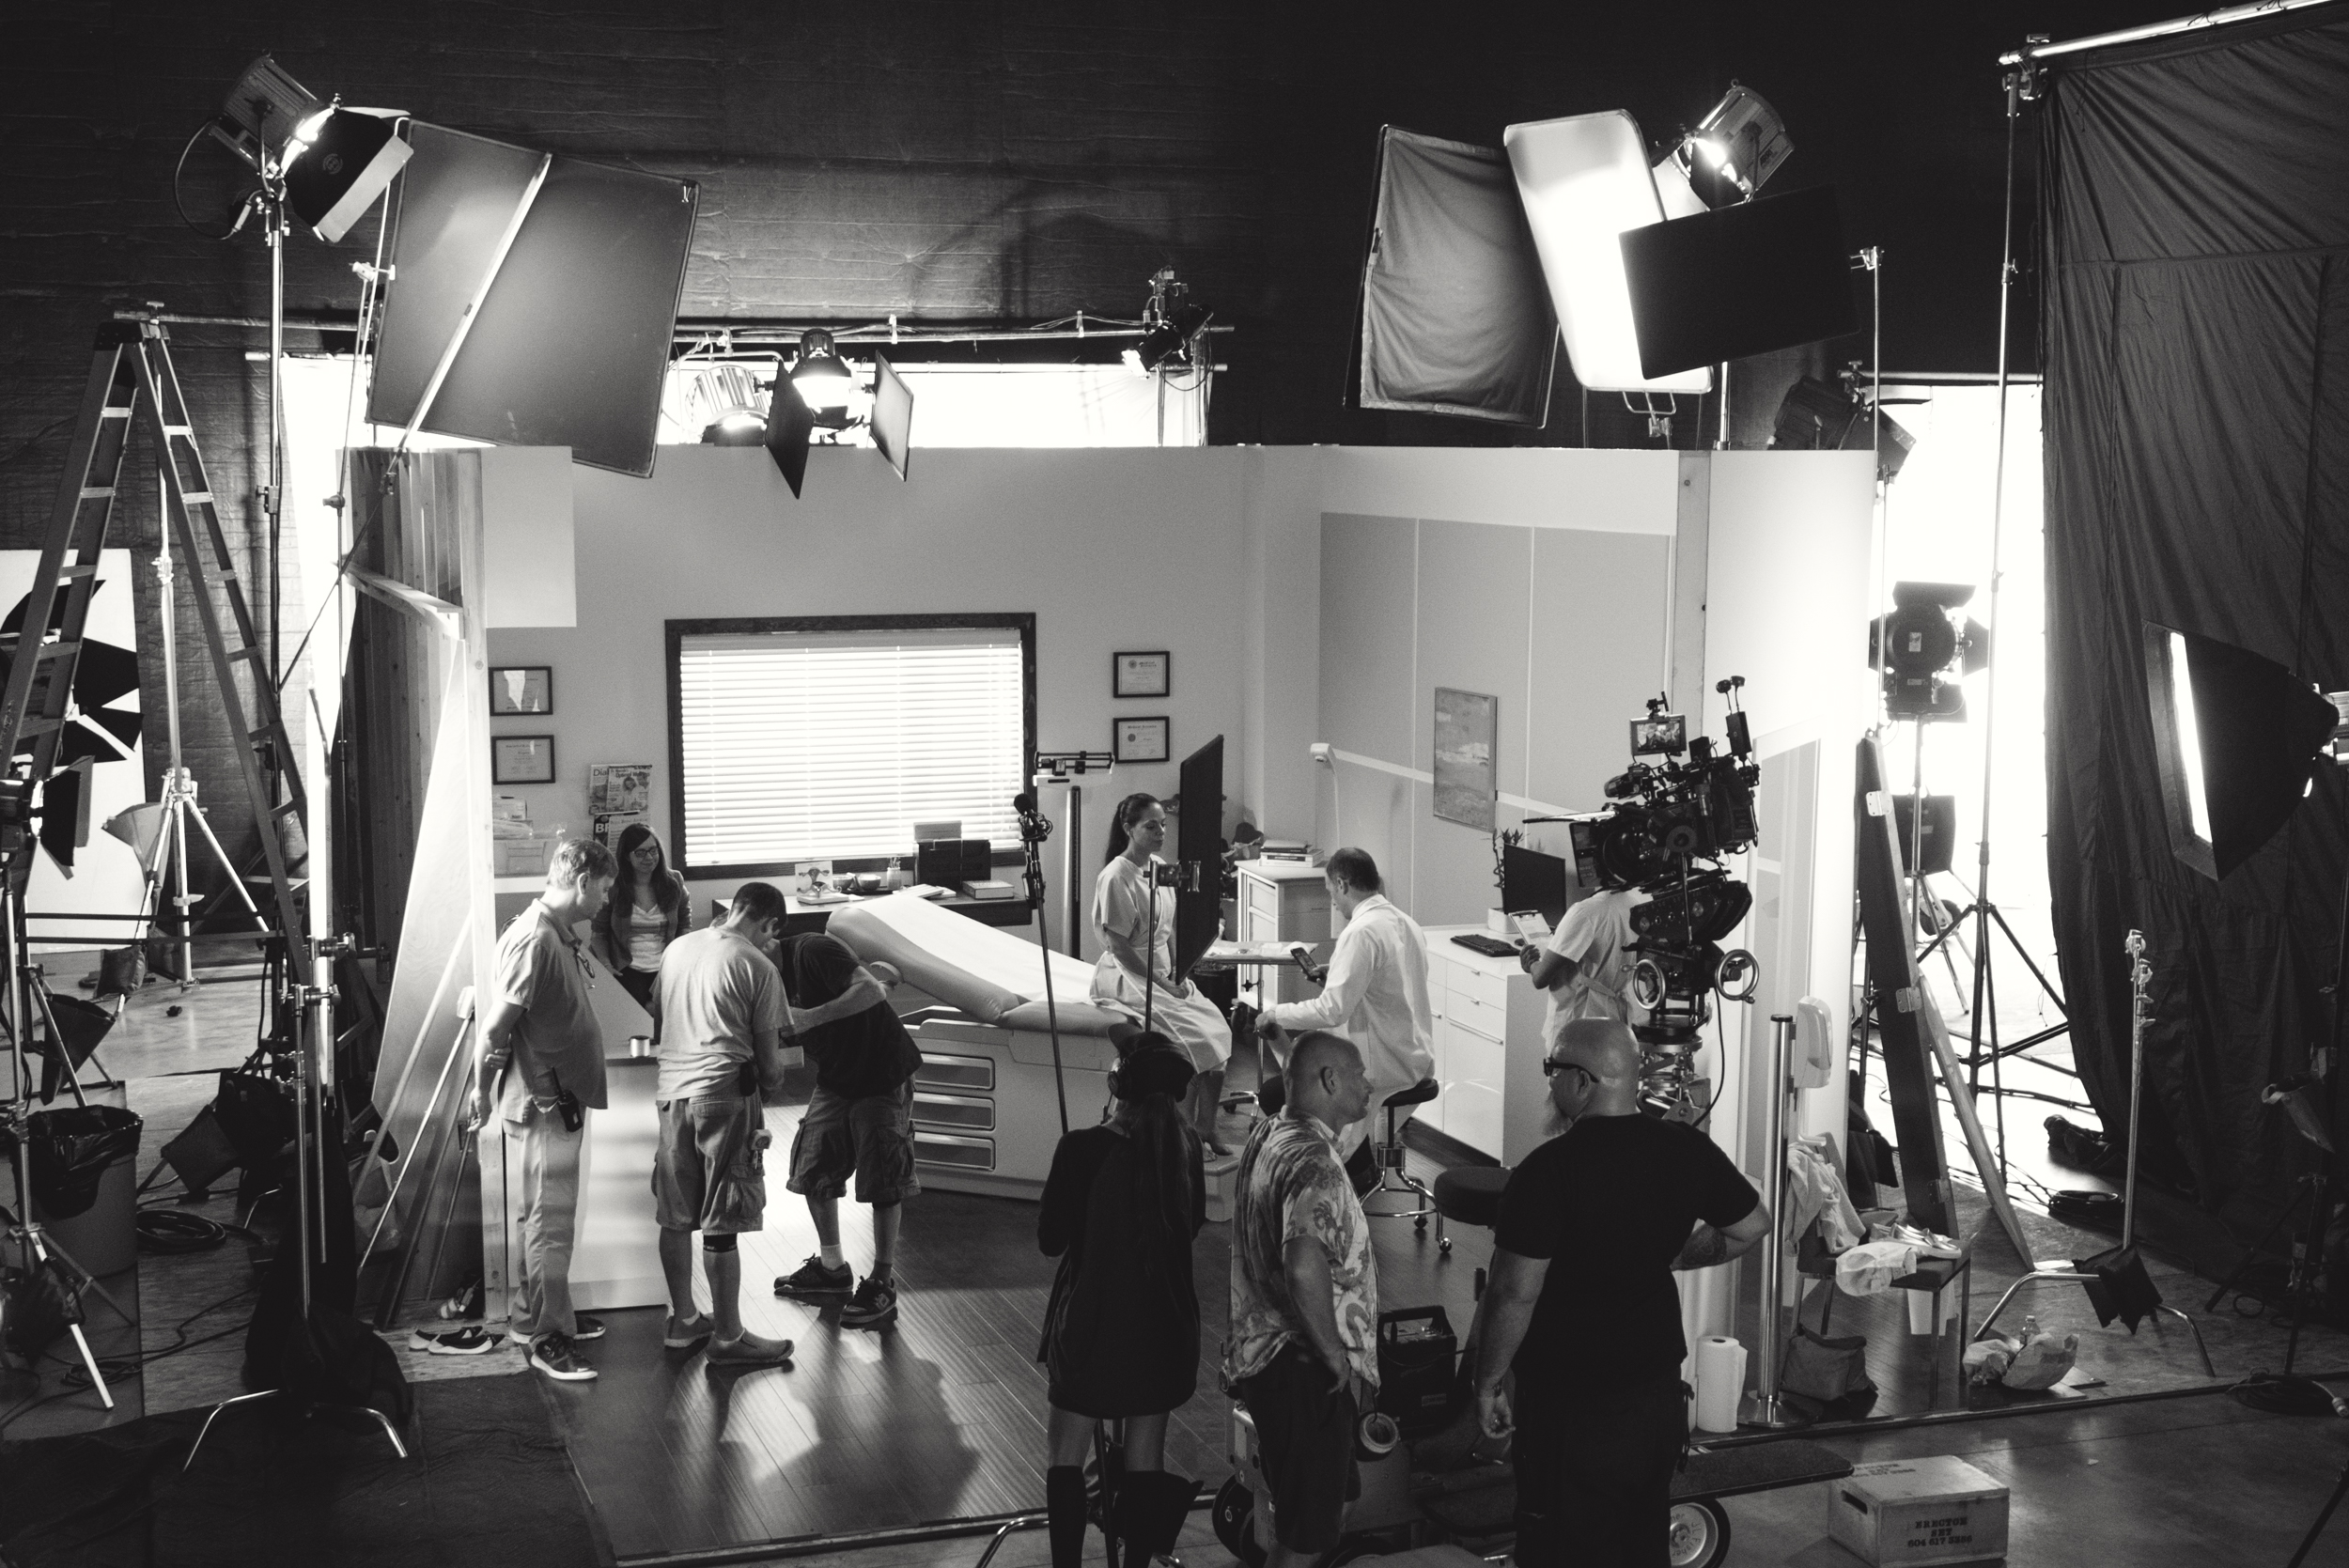 Behind the Scenes   Document the story behind your production to bring your audience along for the ride.